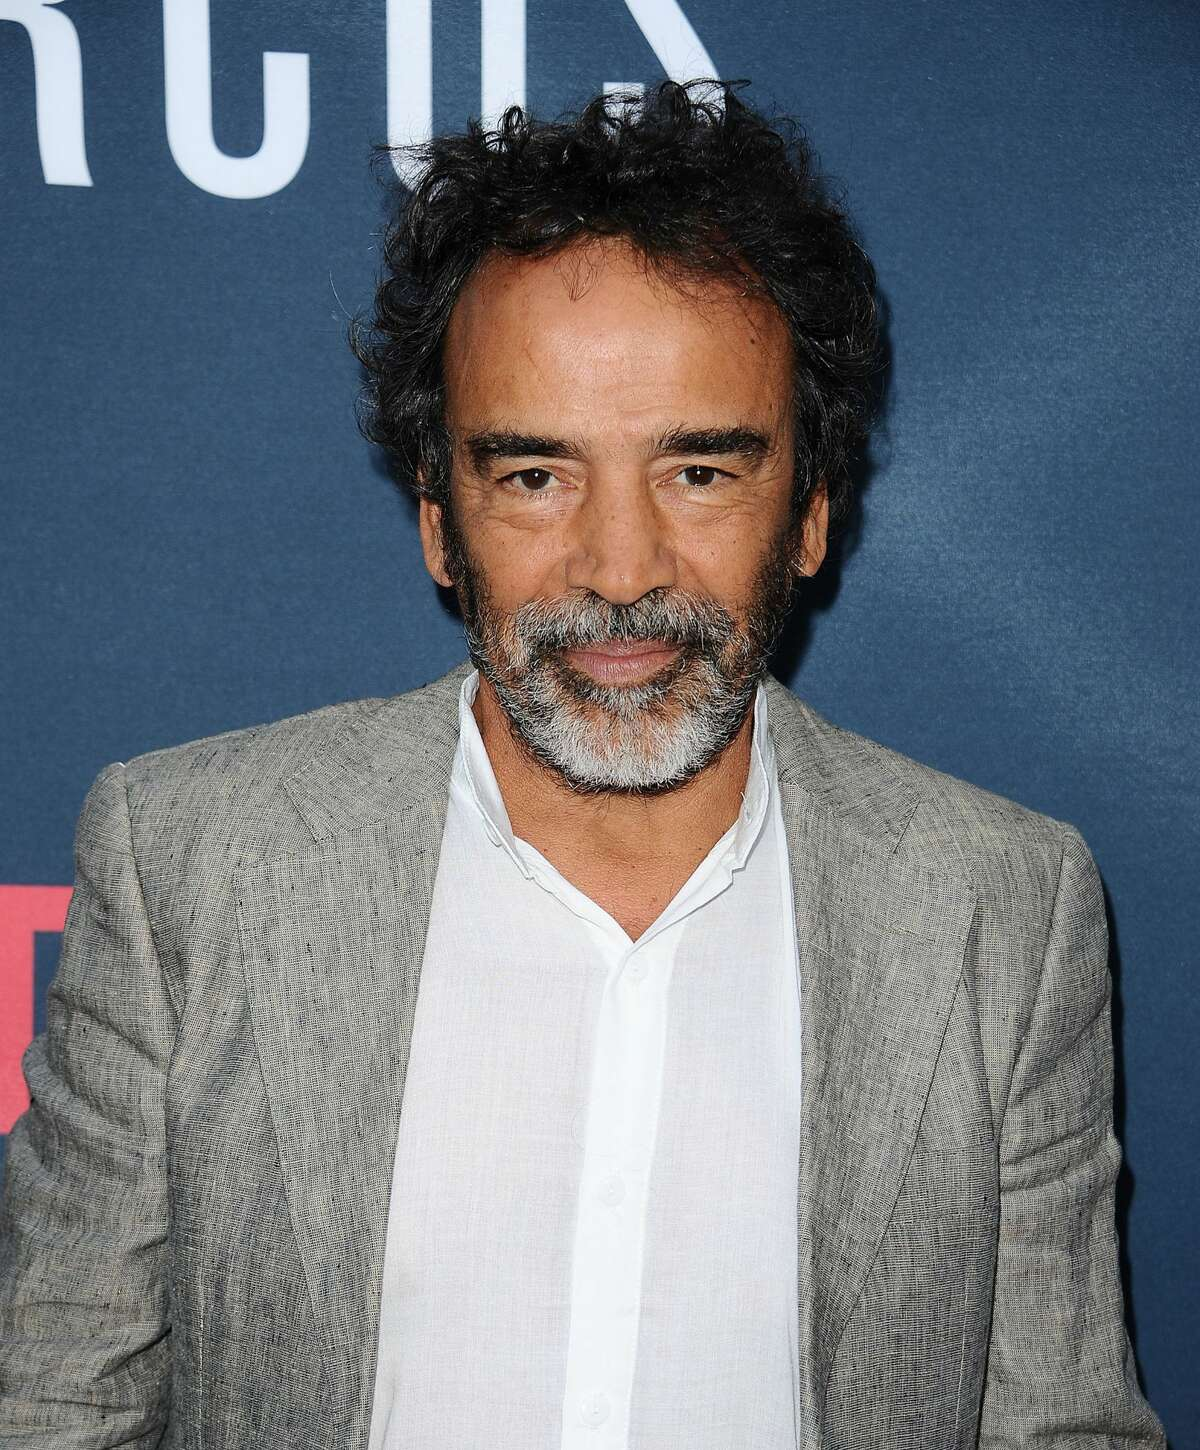 """Damian Alcazar - Season 3 Alcazar will play Gilberto Rodriguez Orejuela in season 3 of """"Narcos."""" He is a Mexican actor who is most noted in America for his role in """"The Chronicles of Narnia: Prince Caspian"""" as Lord Sopespian, but he has a large resume of Spanish movies as well."""